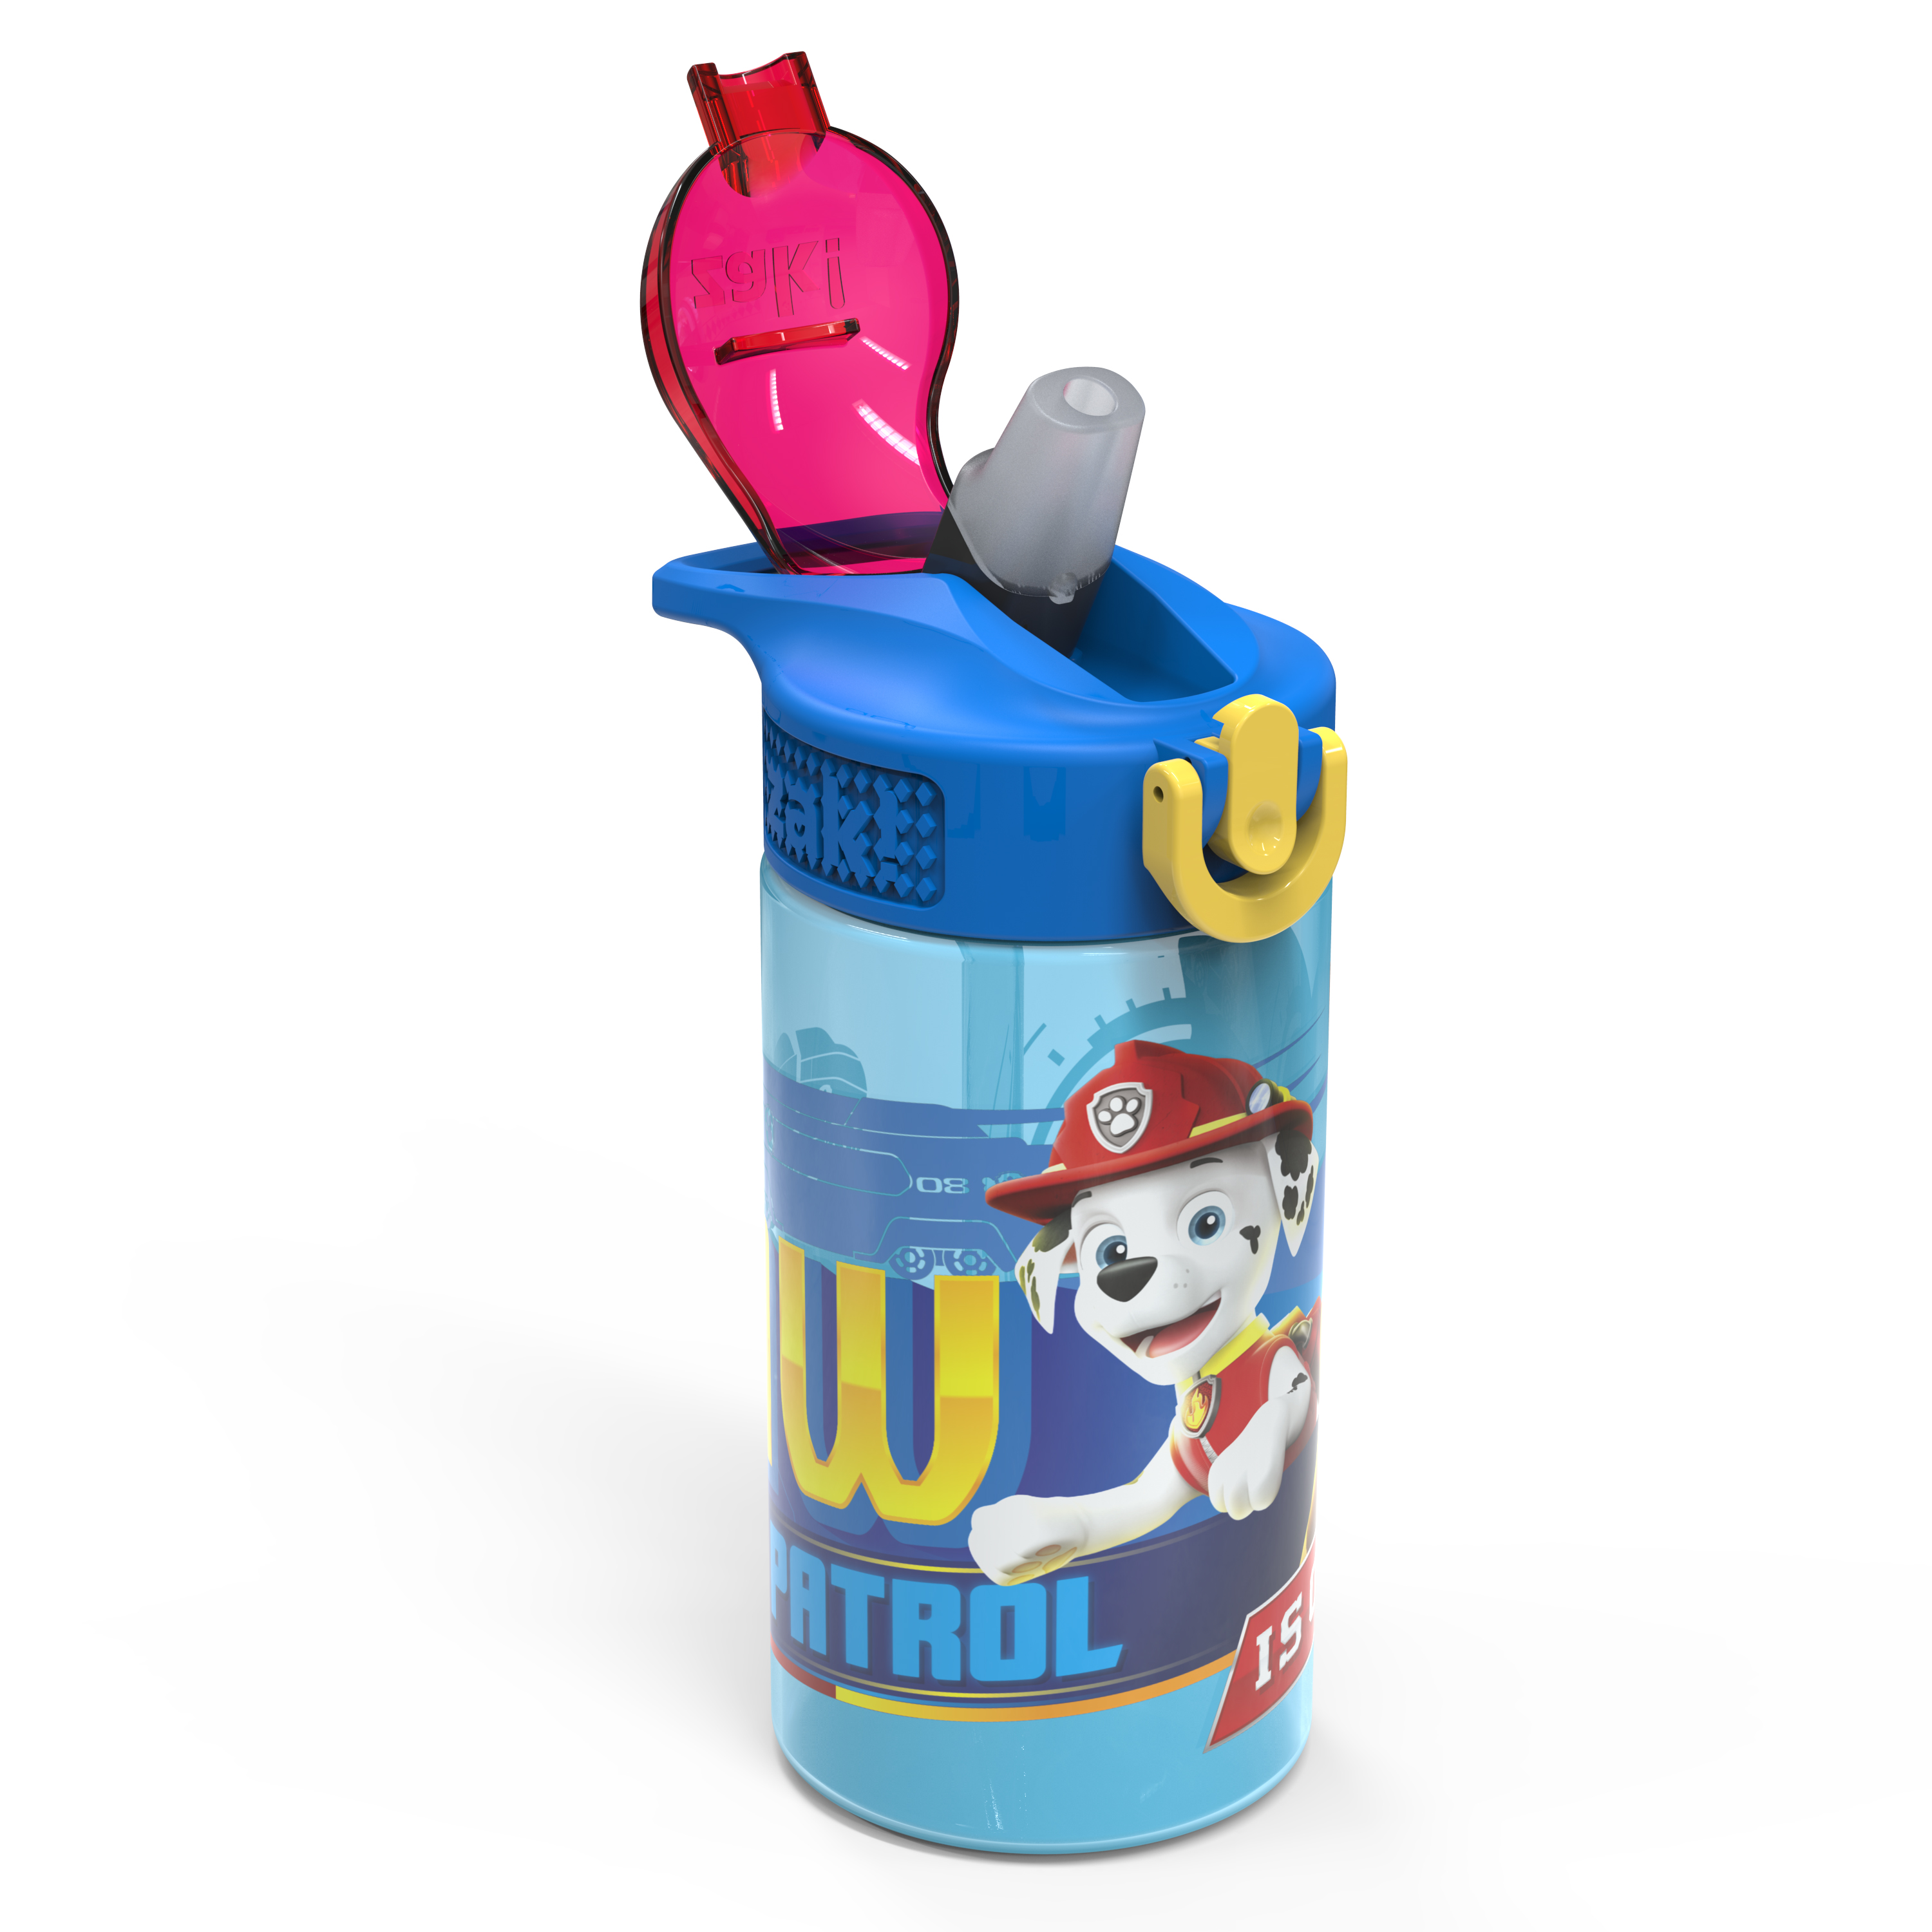 Paw Patrol 16 ounce Reusable Plastic Water Bottle with Straw, Marshall, 2-piece set slideshow image 2